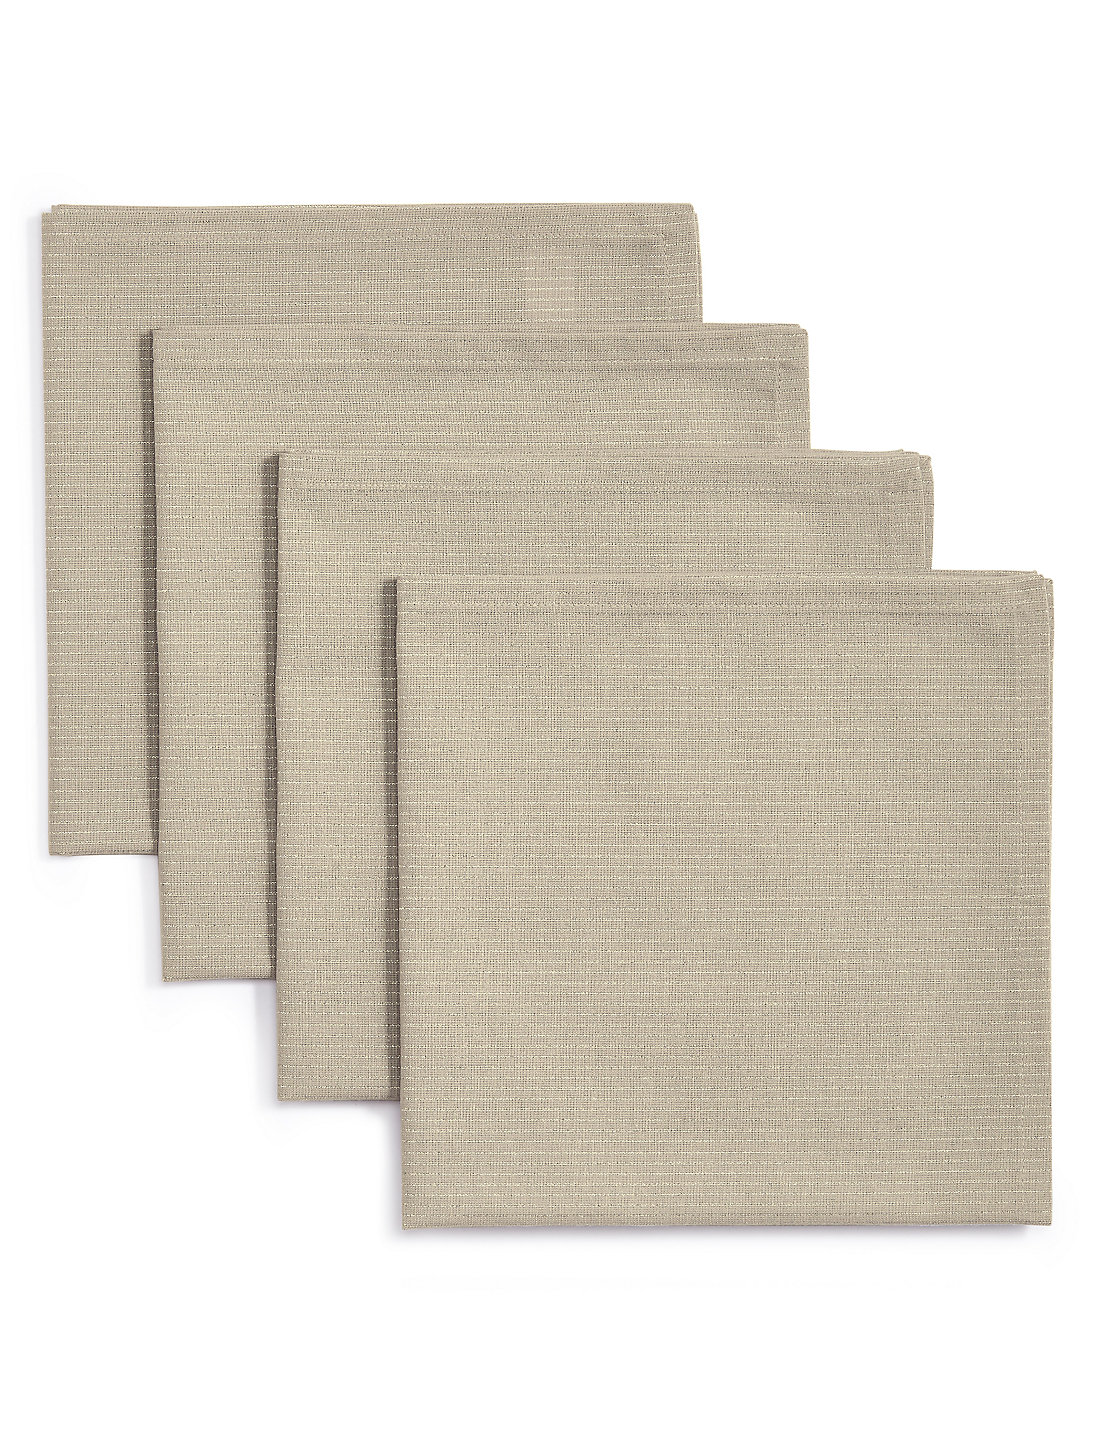 Lurex Napkins Set of 4 £15.00 at M&S